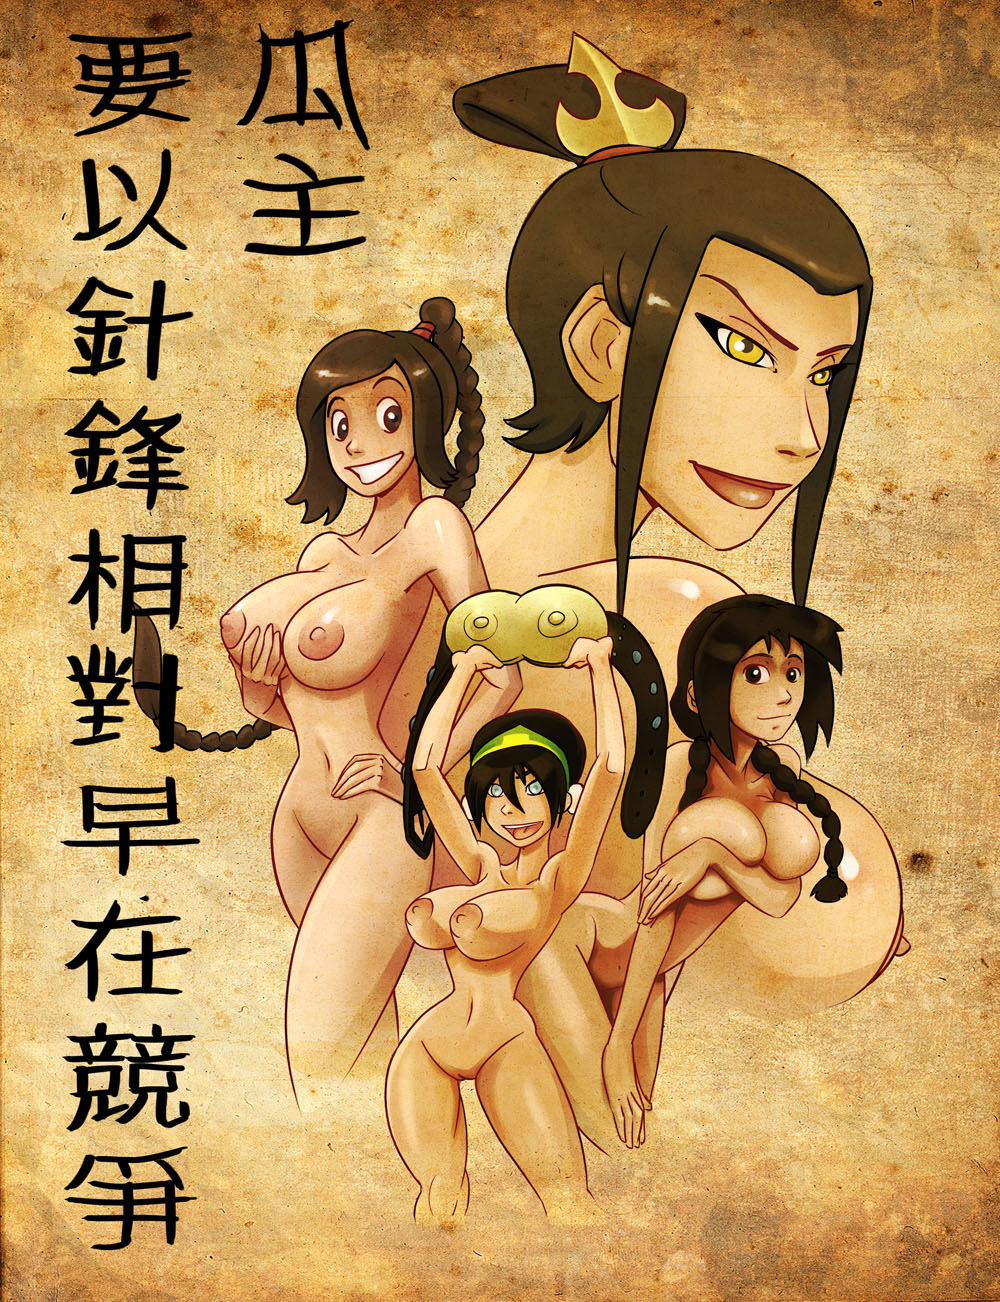 airbender porn last toph the avatar King of the hill toons